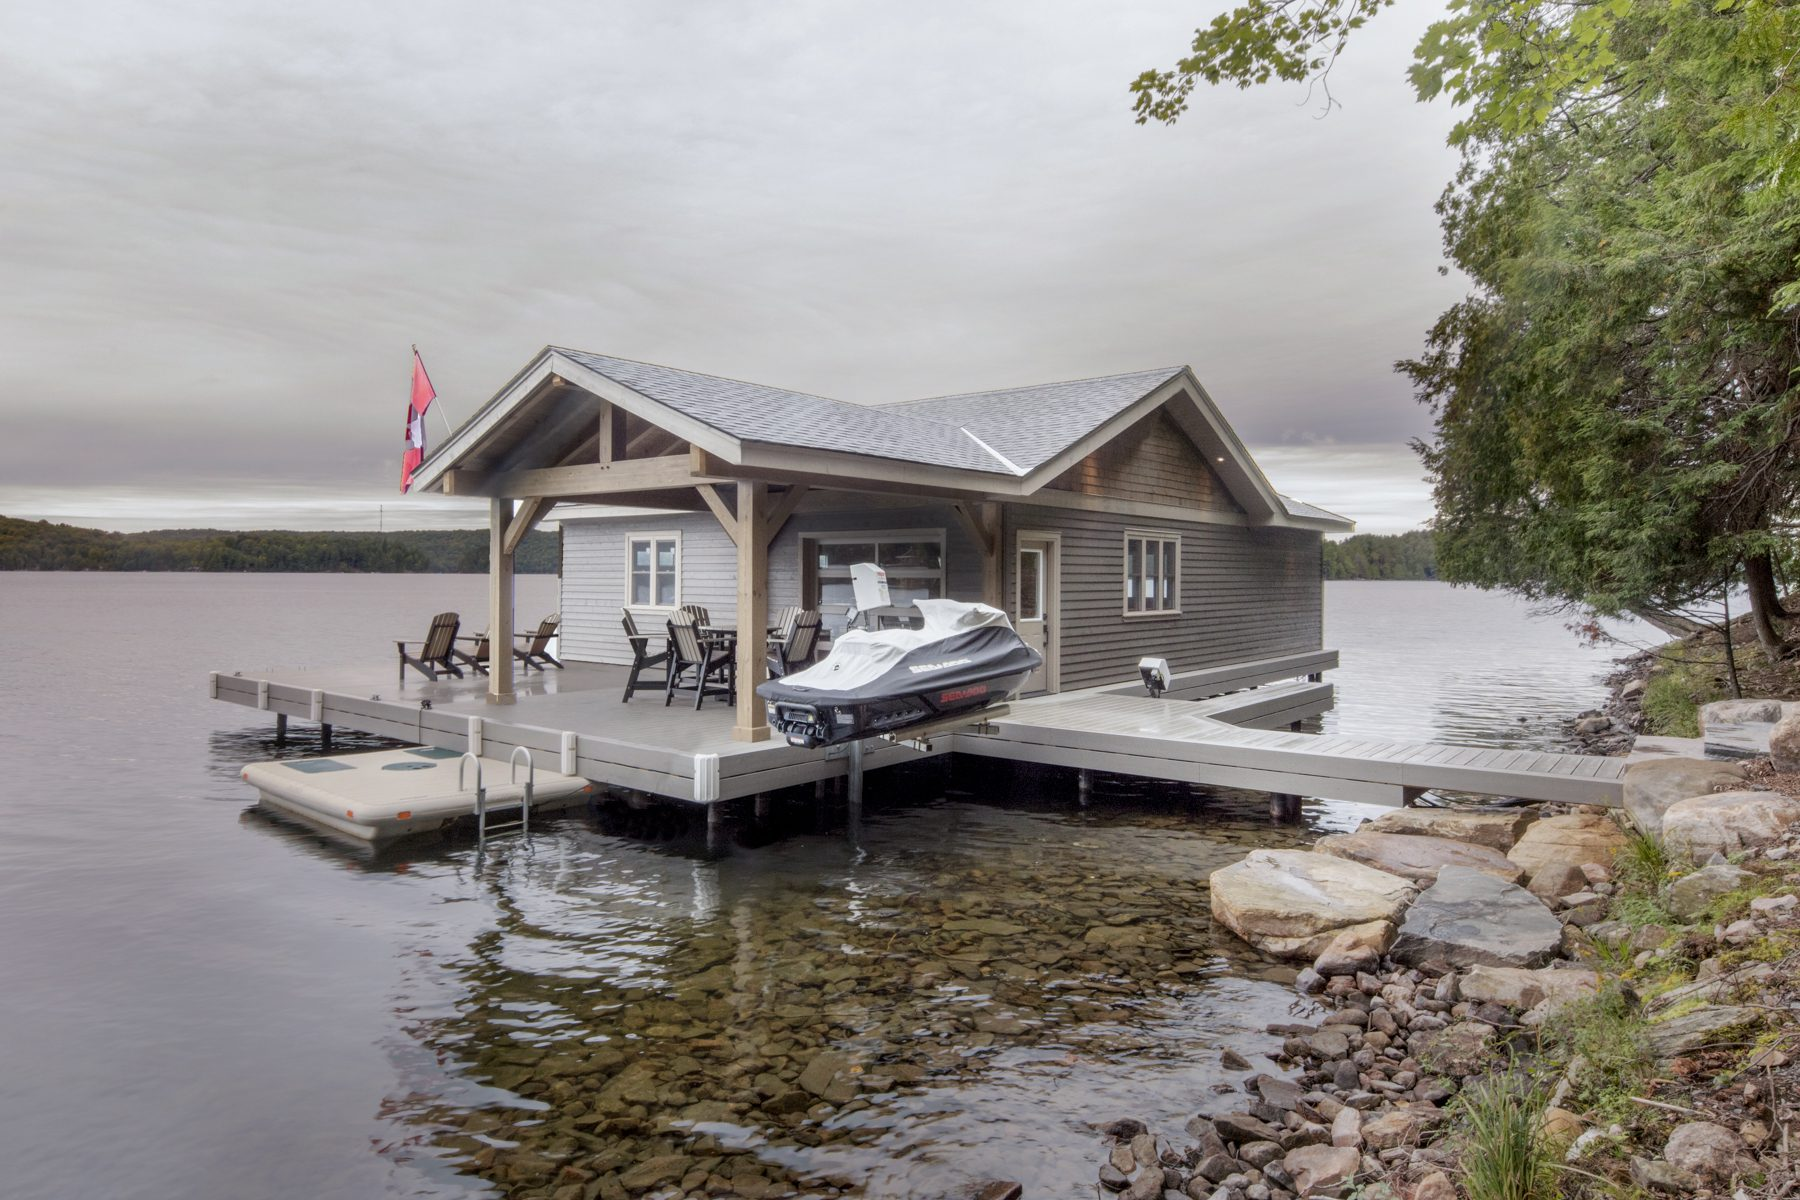 Normerica Timber Frame, Exterior, Cottage, Boathouse, Lake